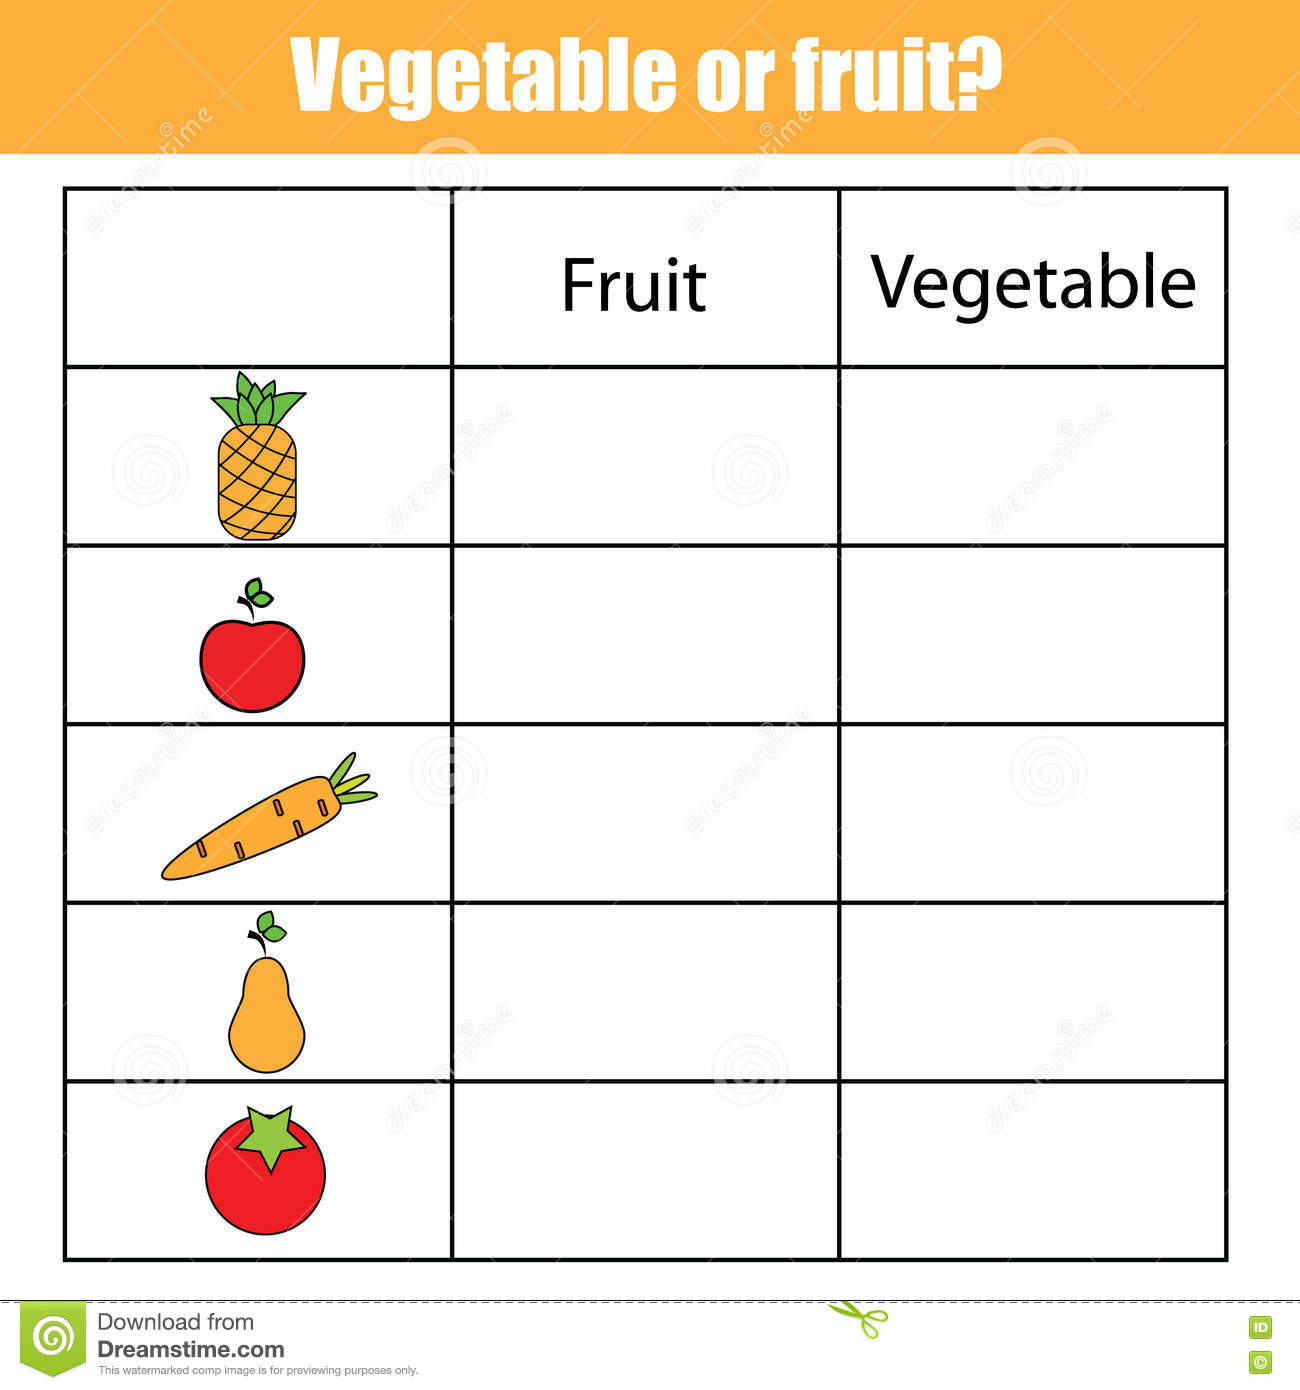 fruit or vegetable educational children game kids activity sheet - Kids Activity Sheet